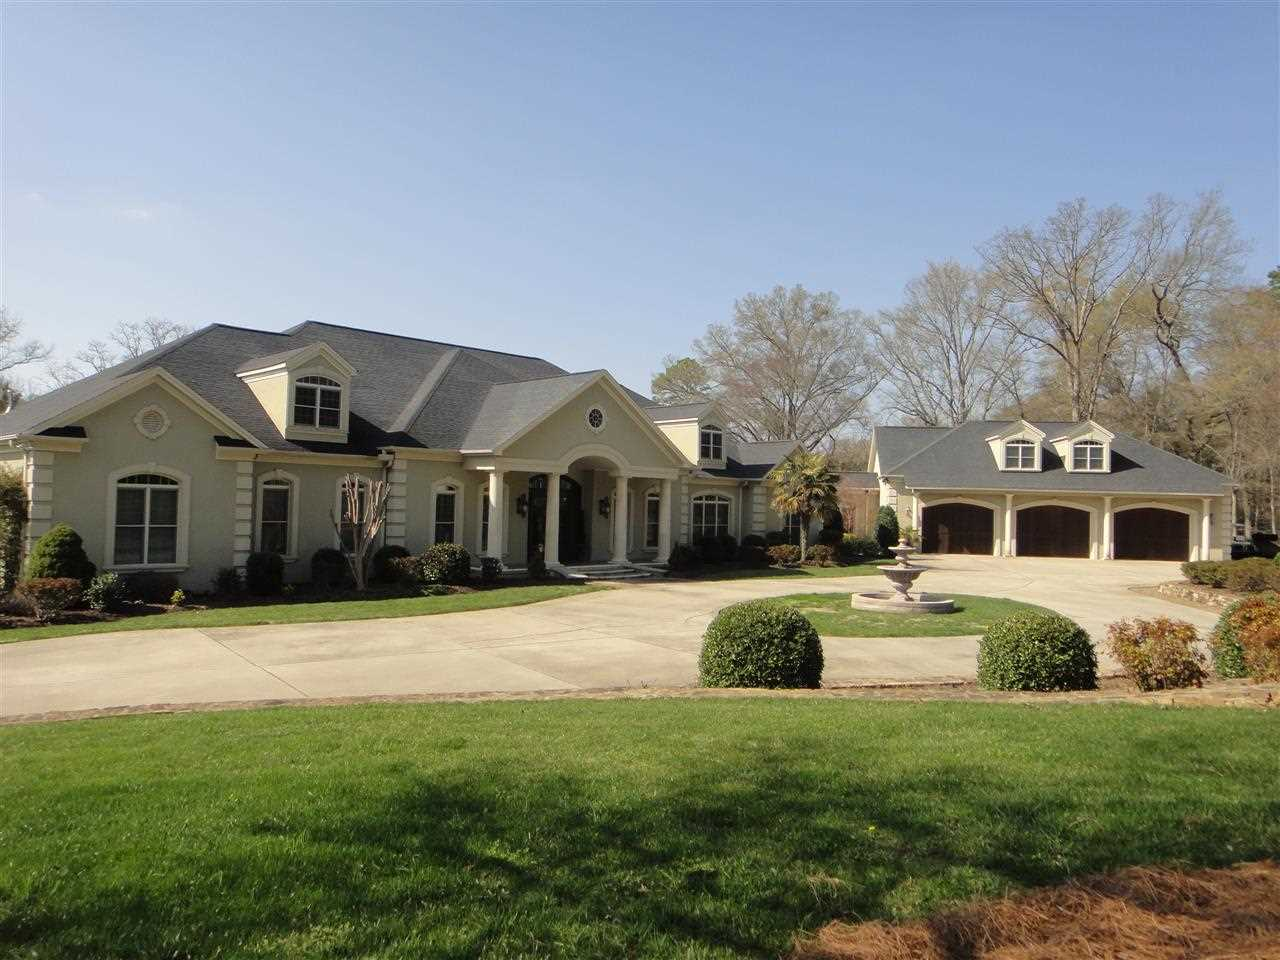 south carolina waterfront property in lake wylie ft mill tega cay